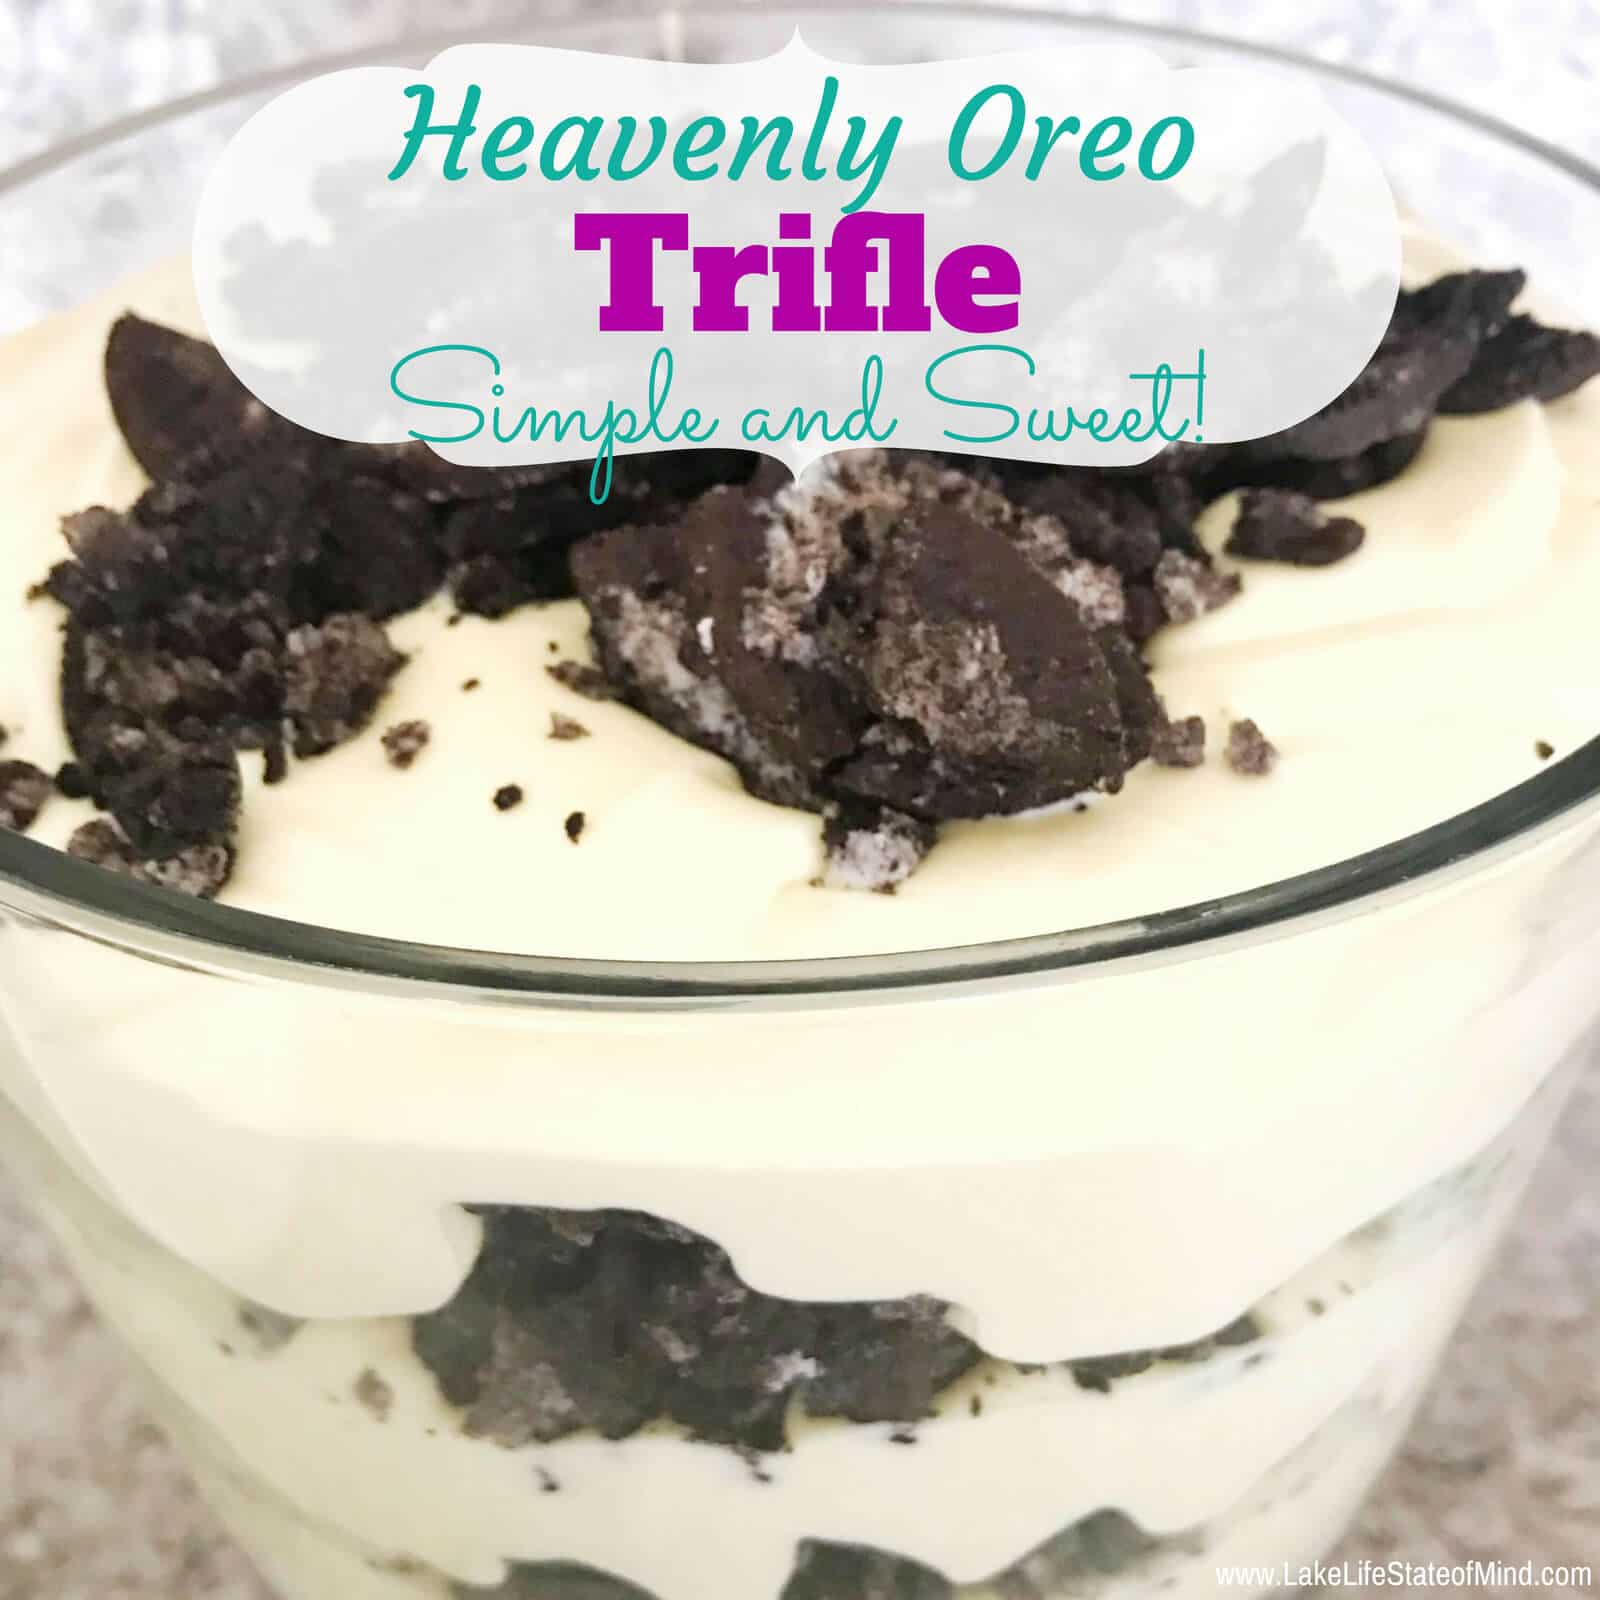 Heavenly Oreo Trifle